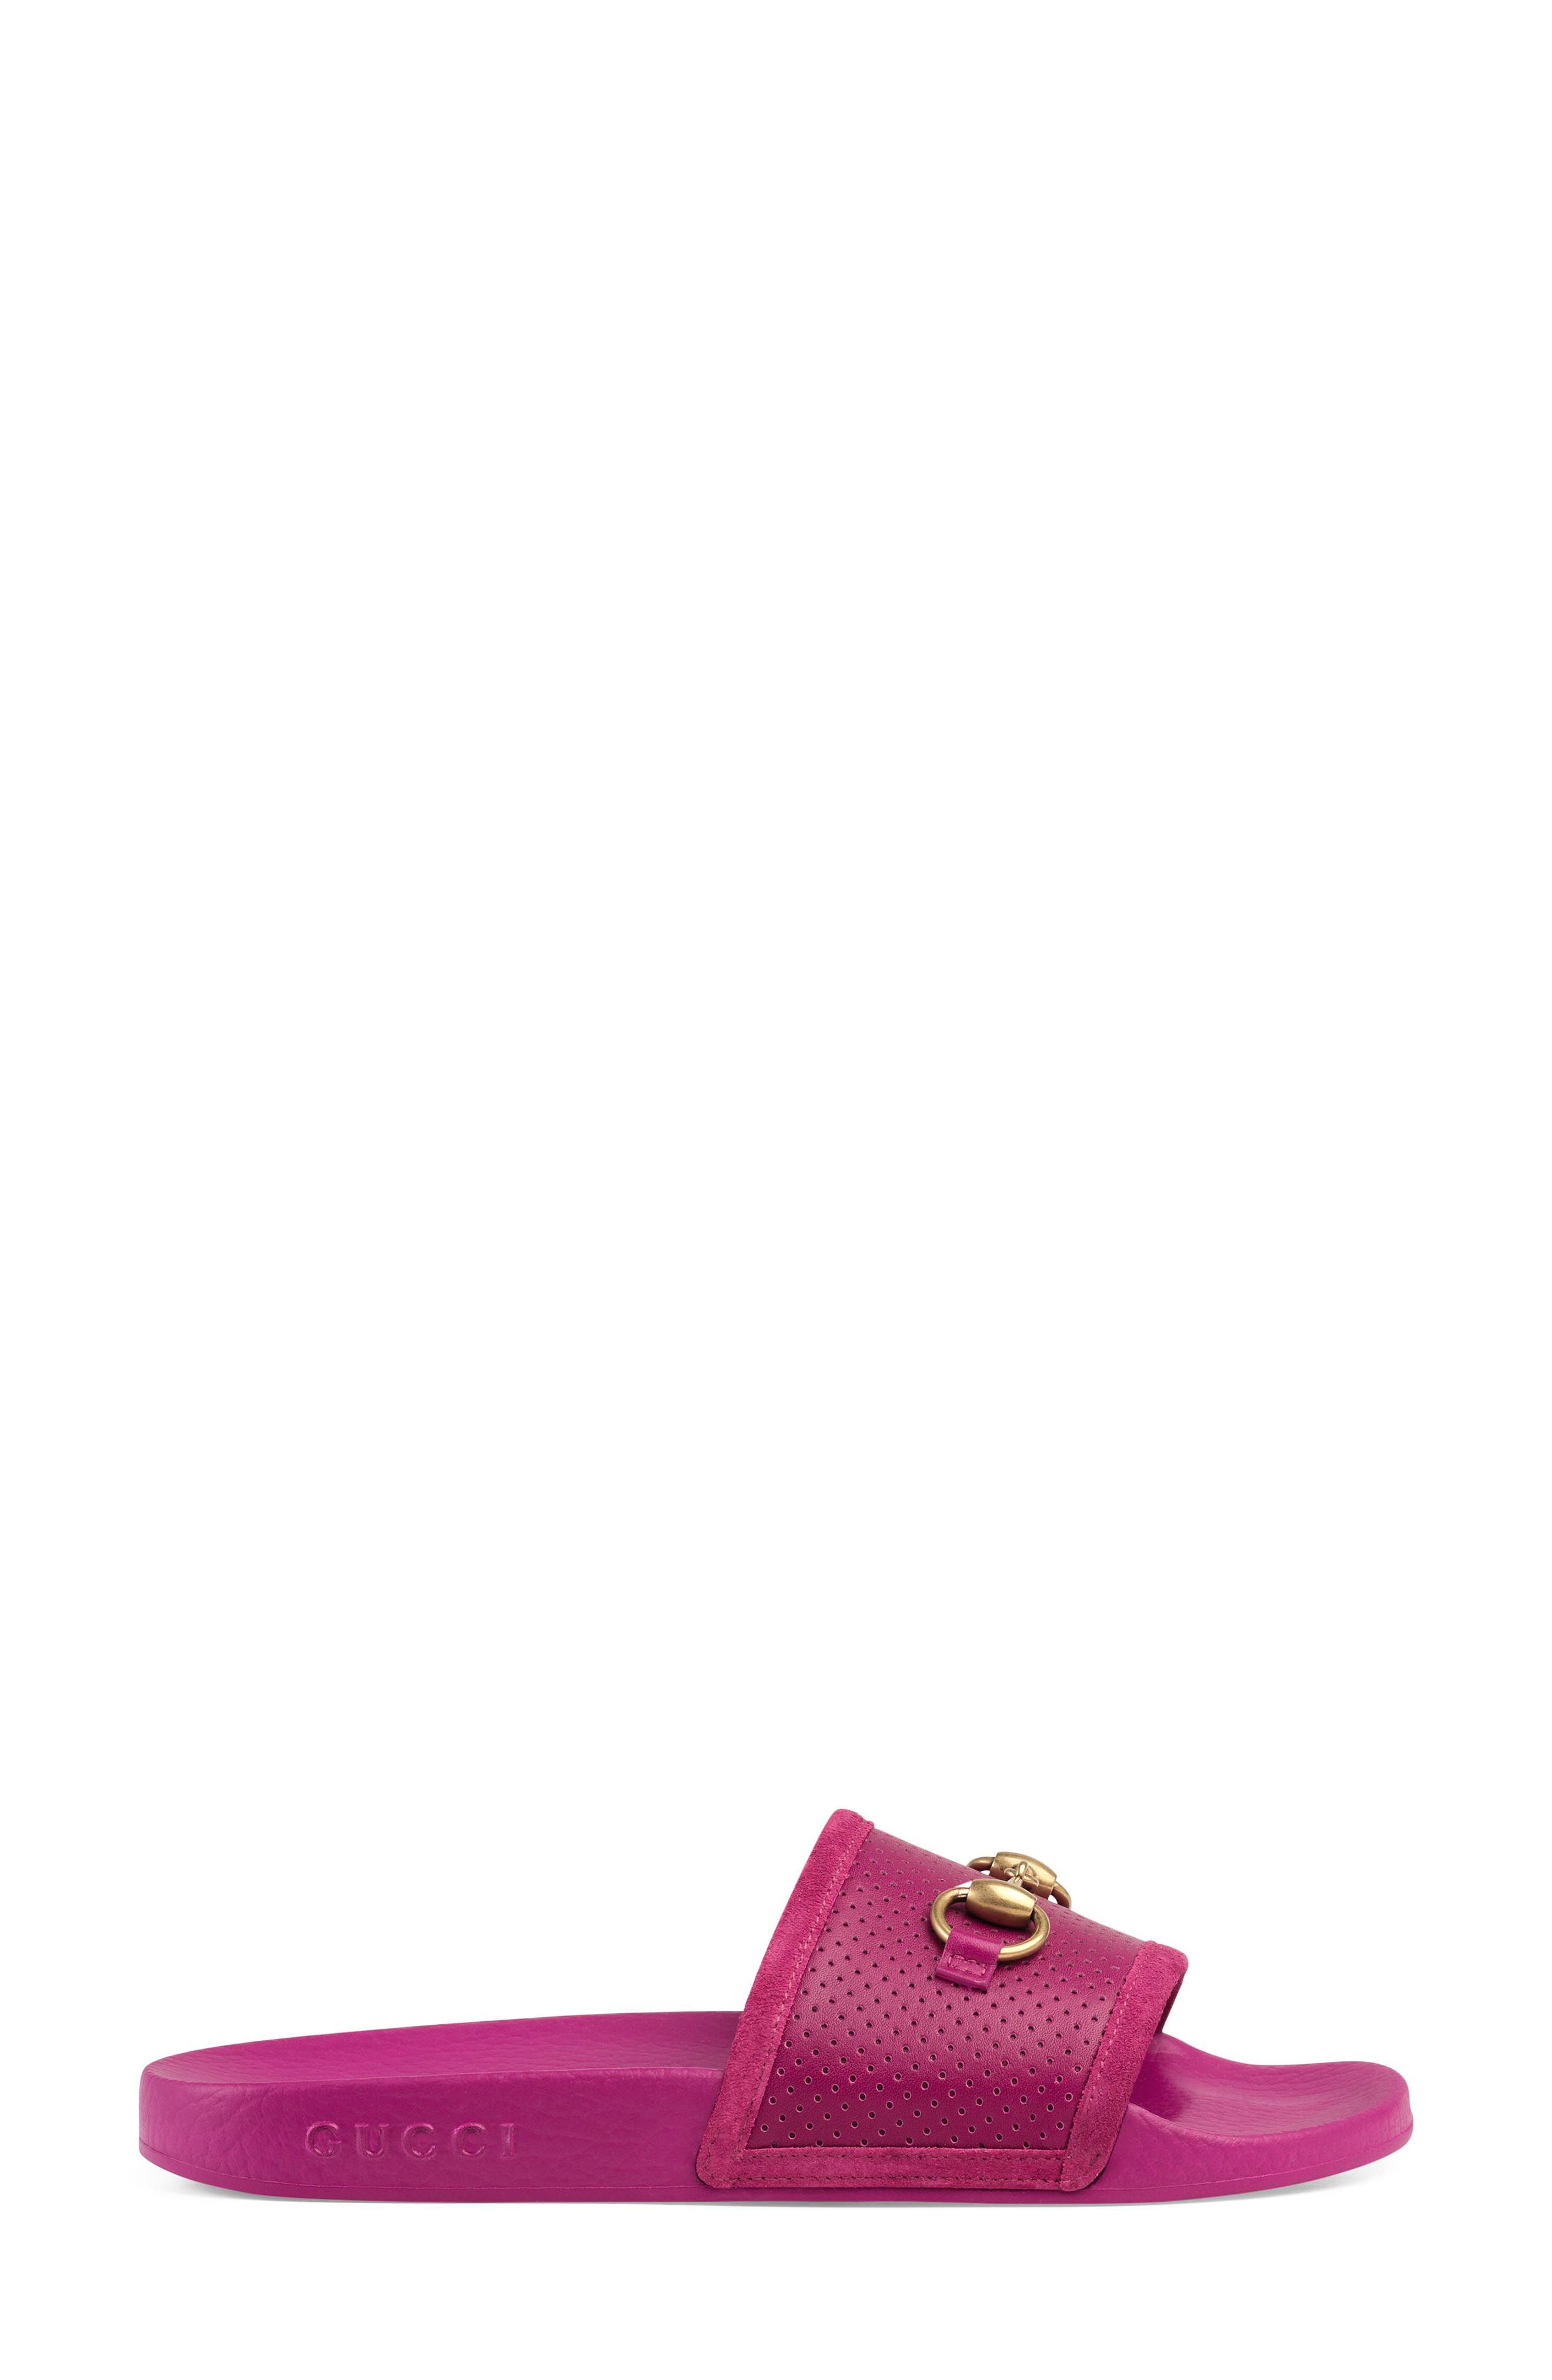 Horsebit Slide Sandal,                             Alternate thumbnail 2, color,                             Dark Pink